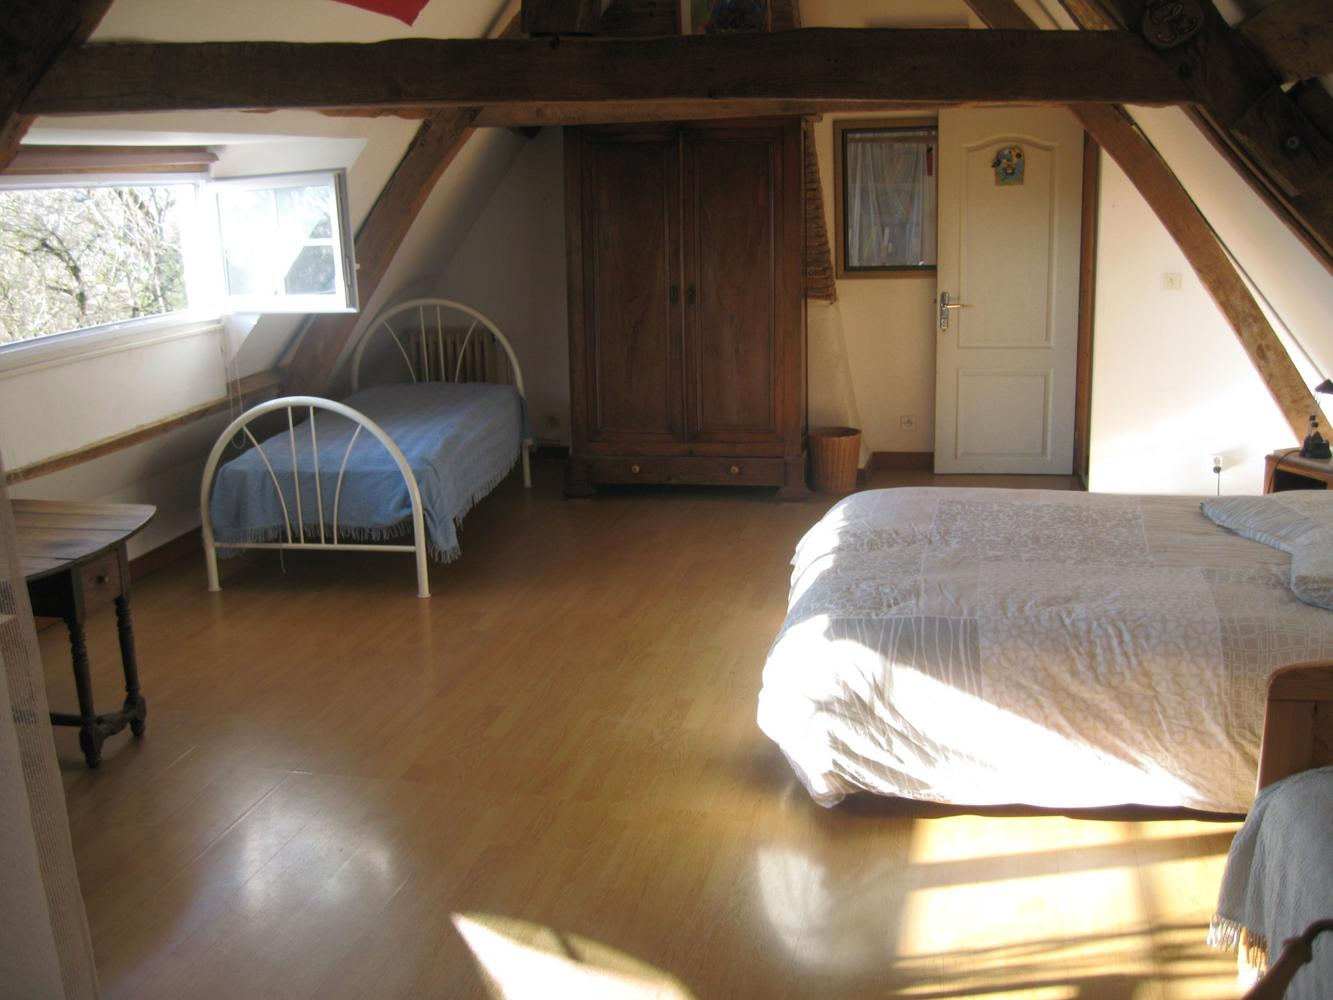 Chambre 3*** 1001 nuits en Berry, Indre - photo #1